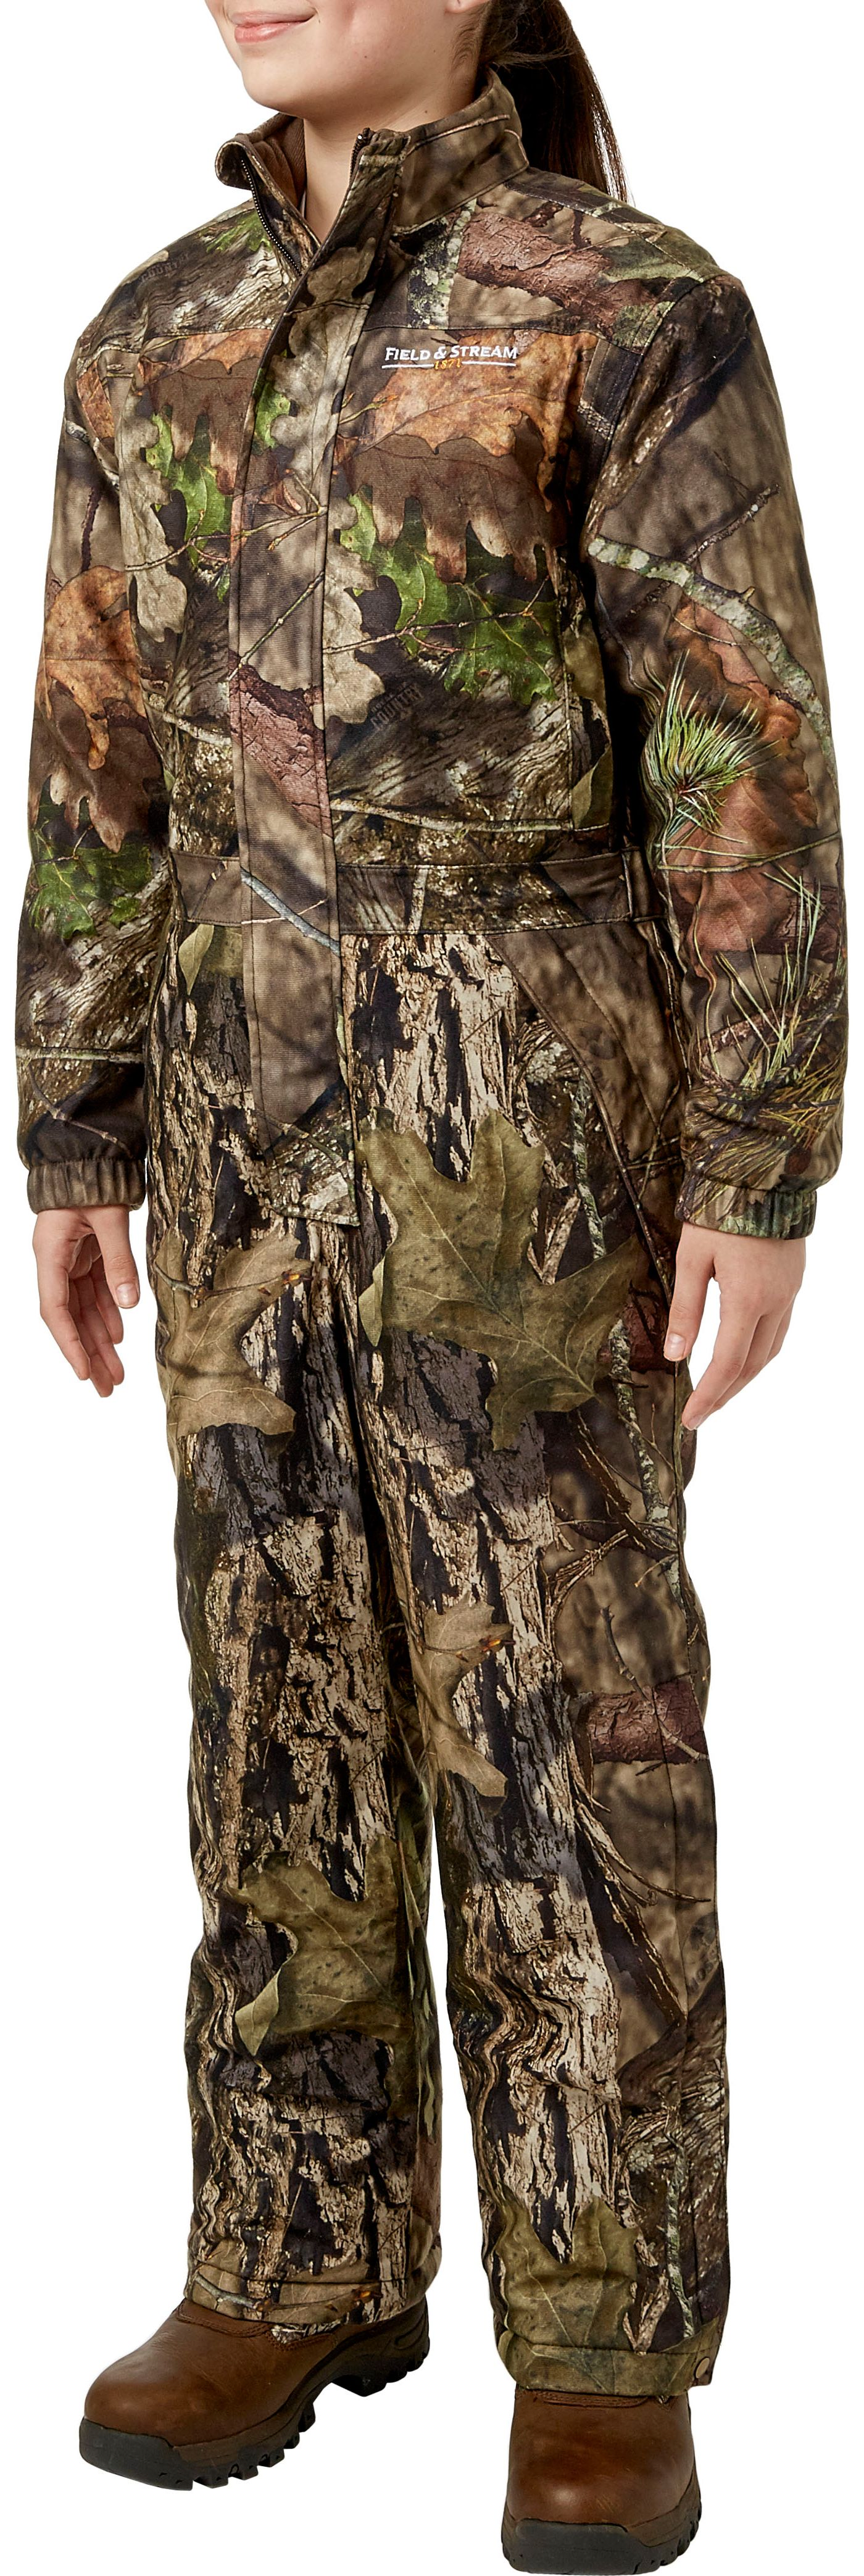 Field & Stream Youth Pursuit Insulated Hunting Coveralls